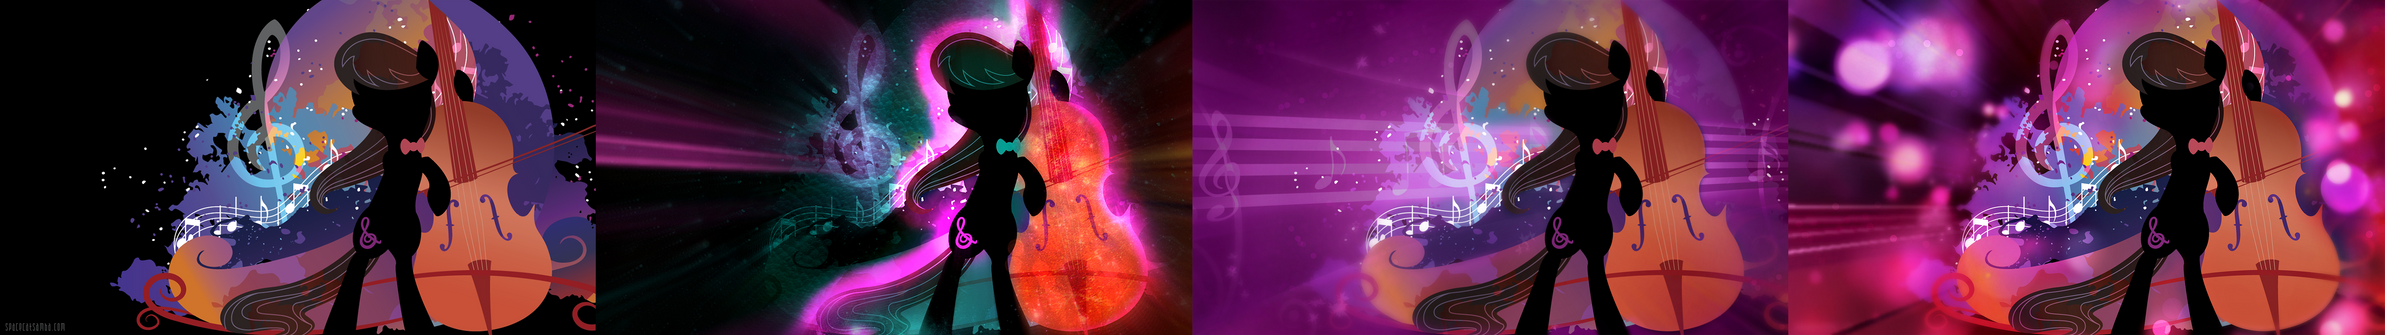 Octavia Melody Silhouette Wall Edited (Updated) by ConnieTheCasanova